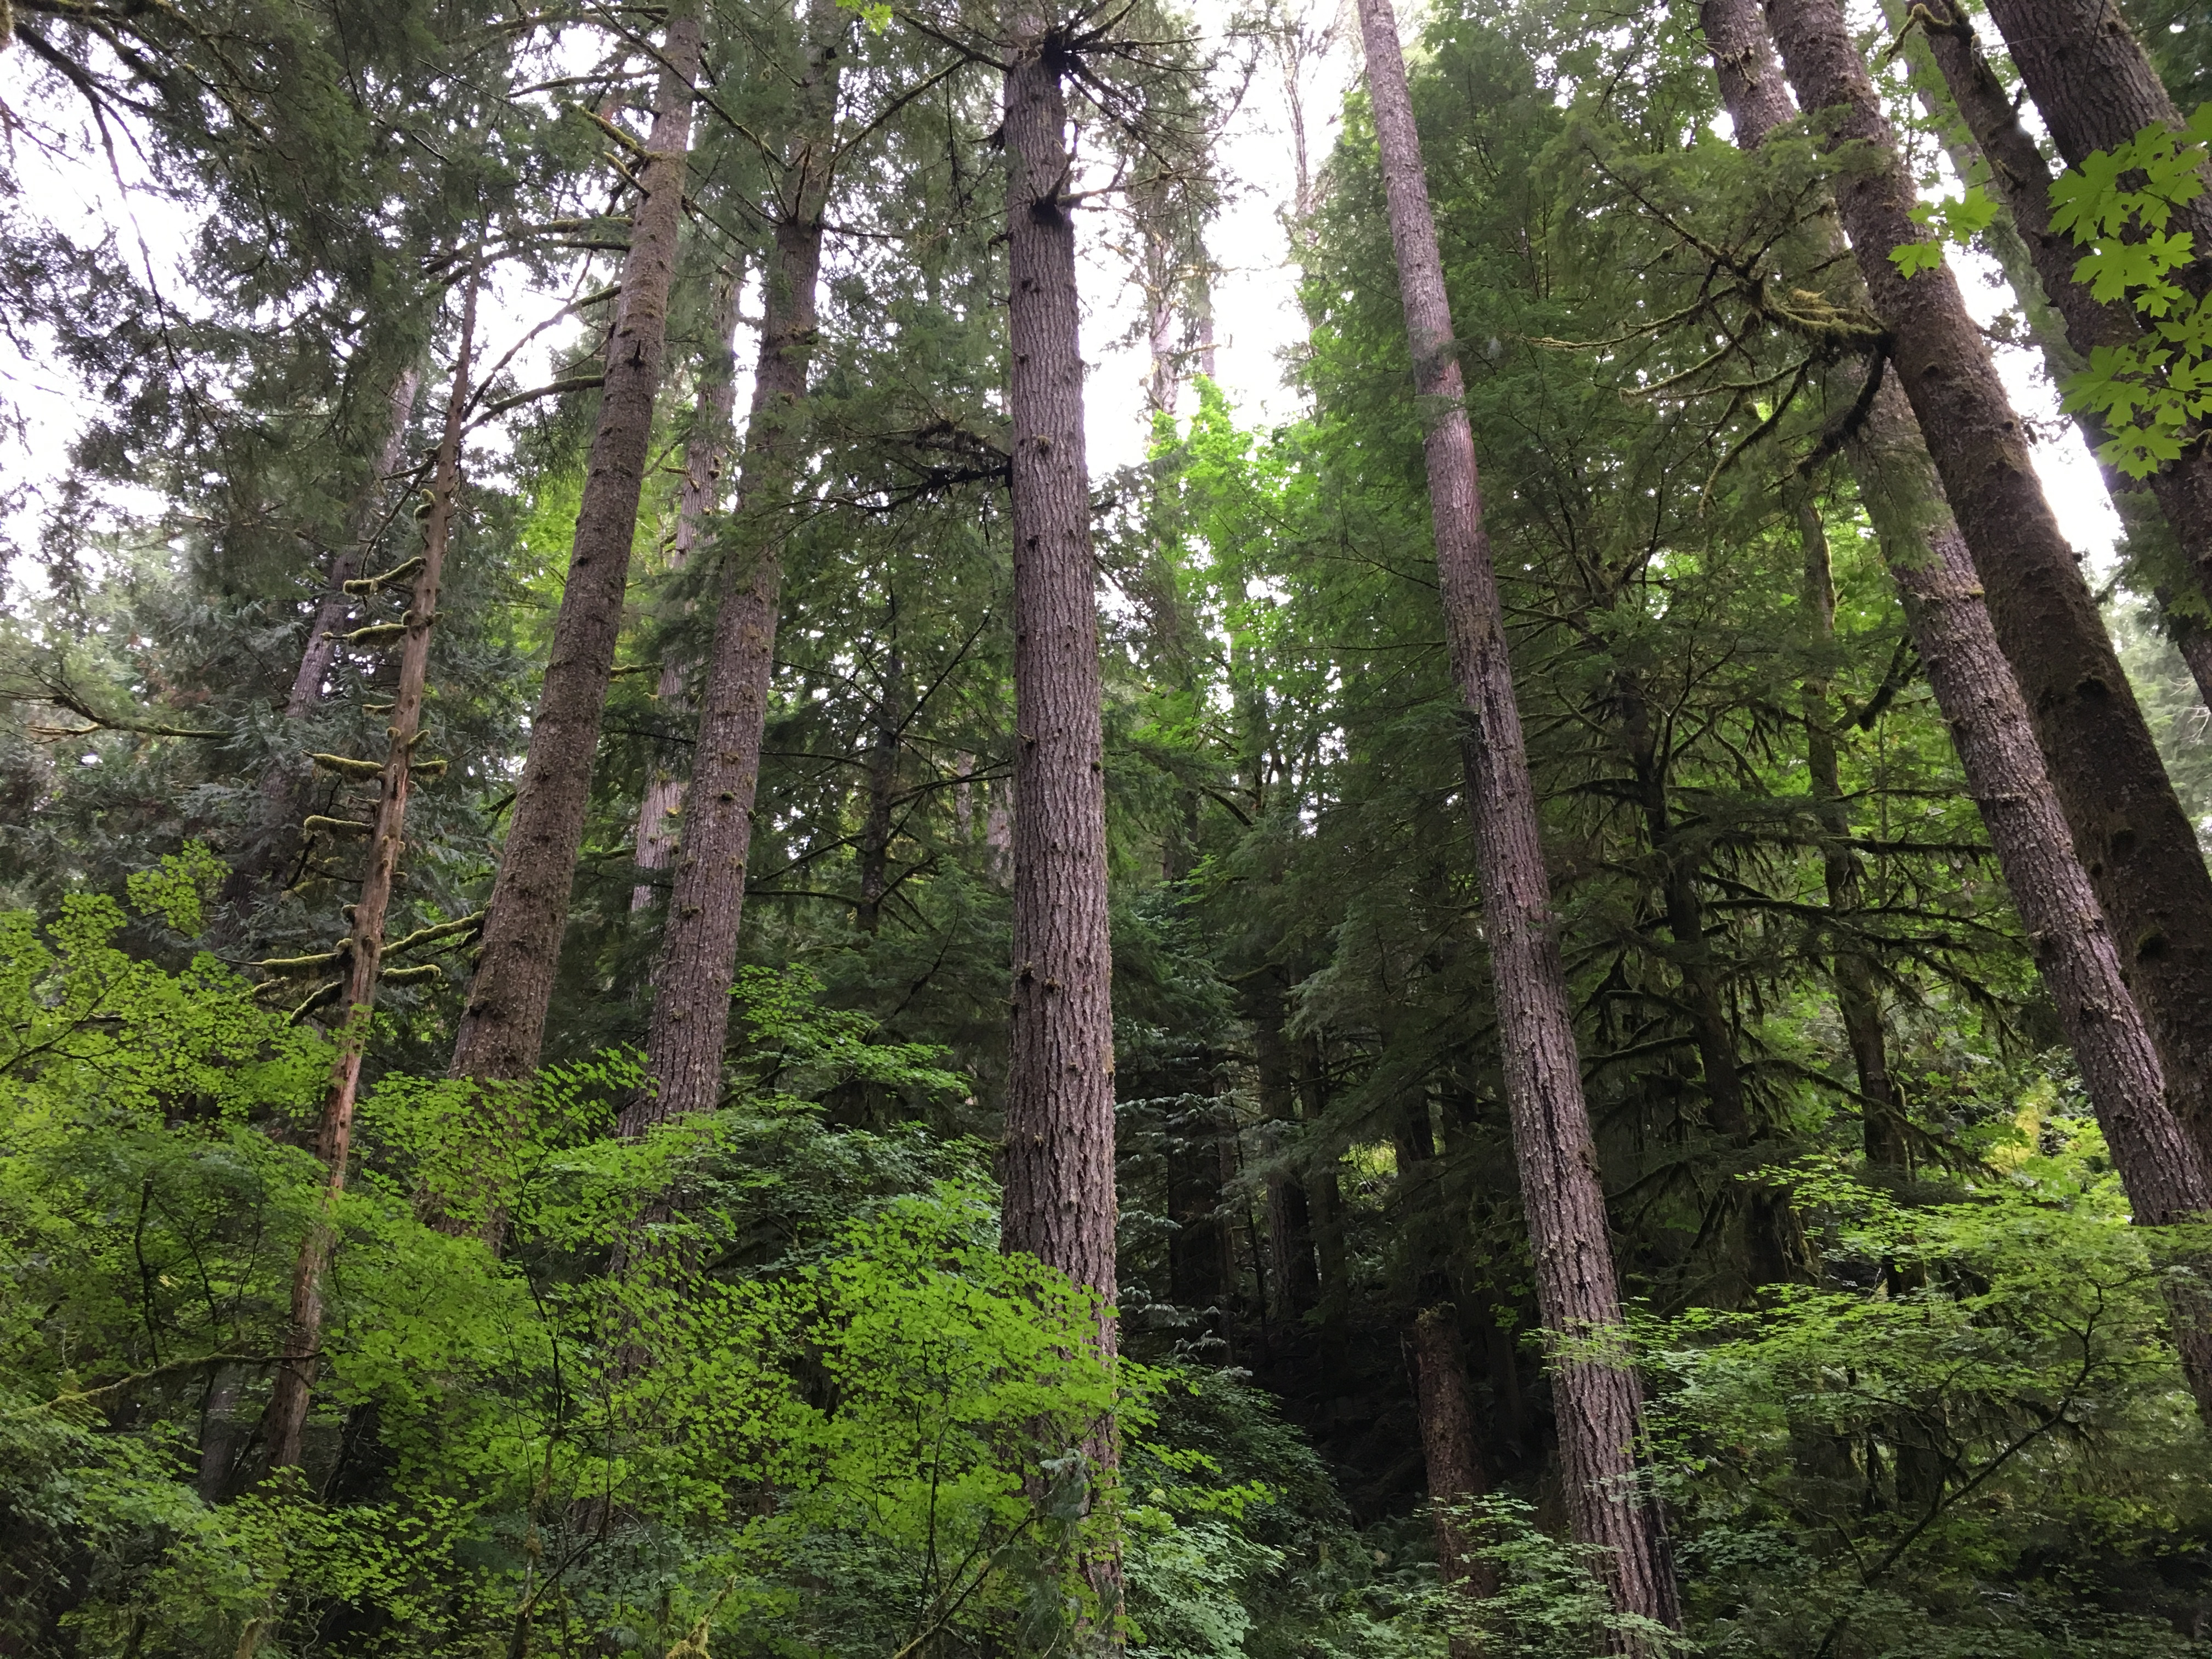 Forests near the Coquille River